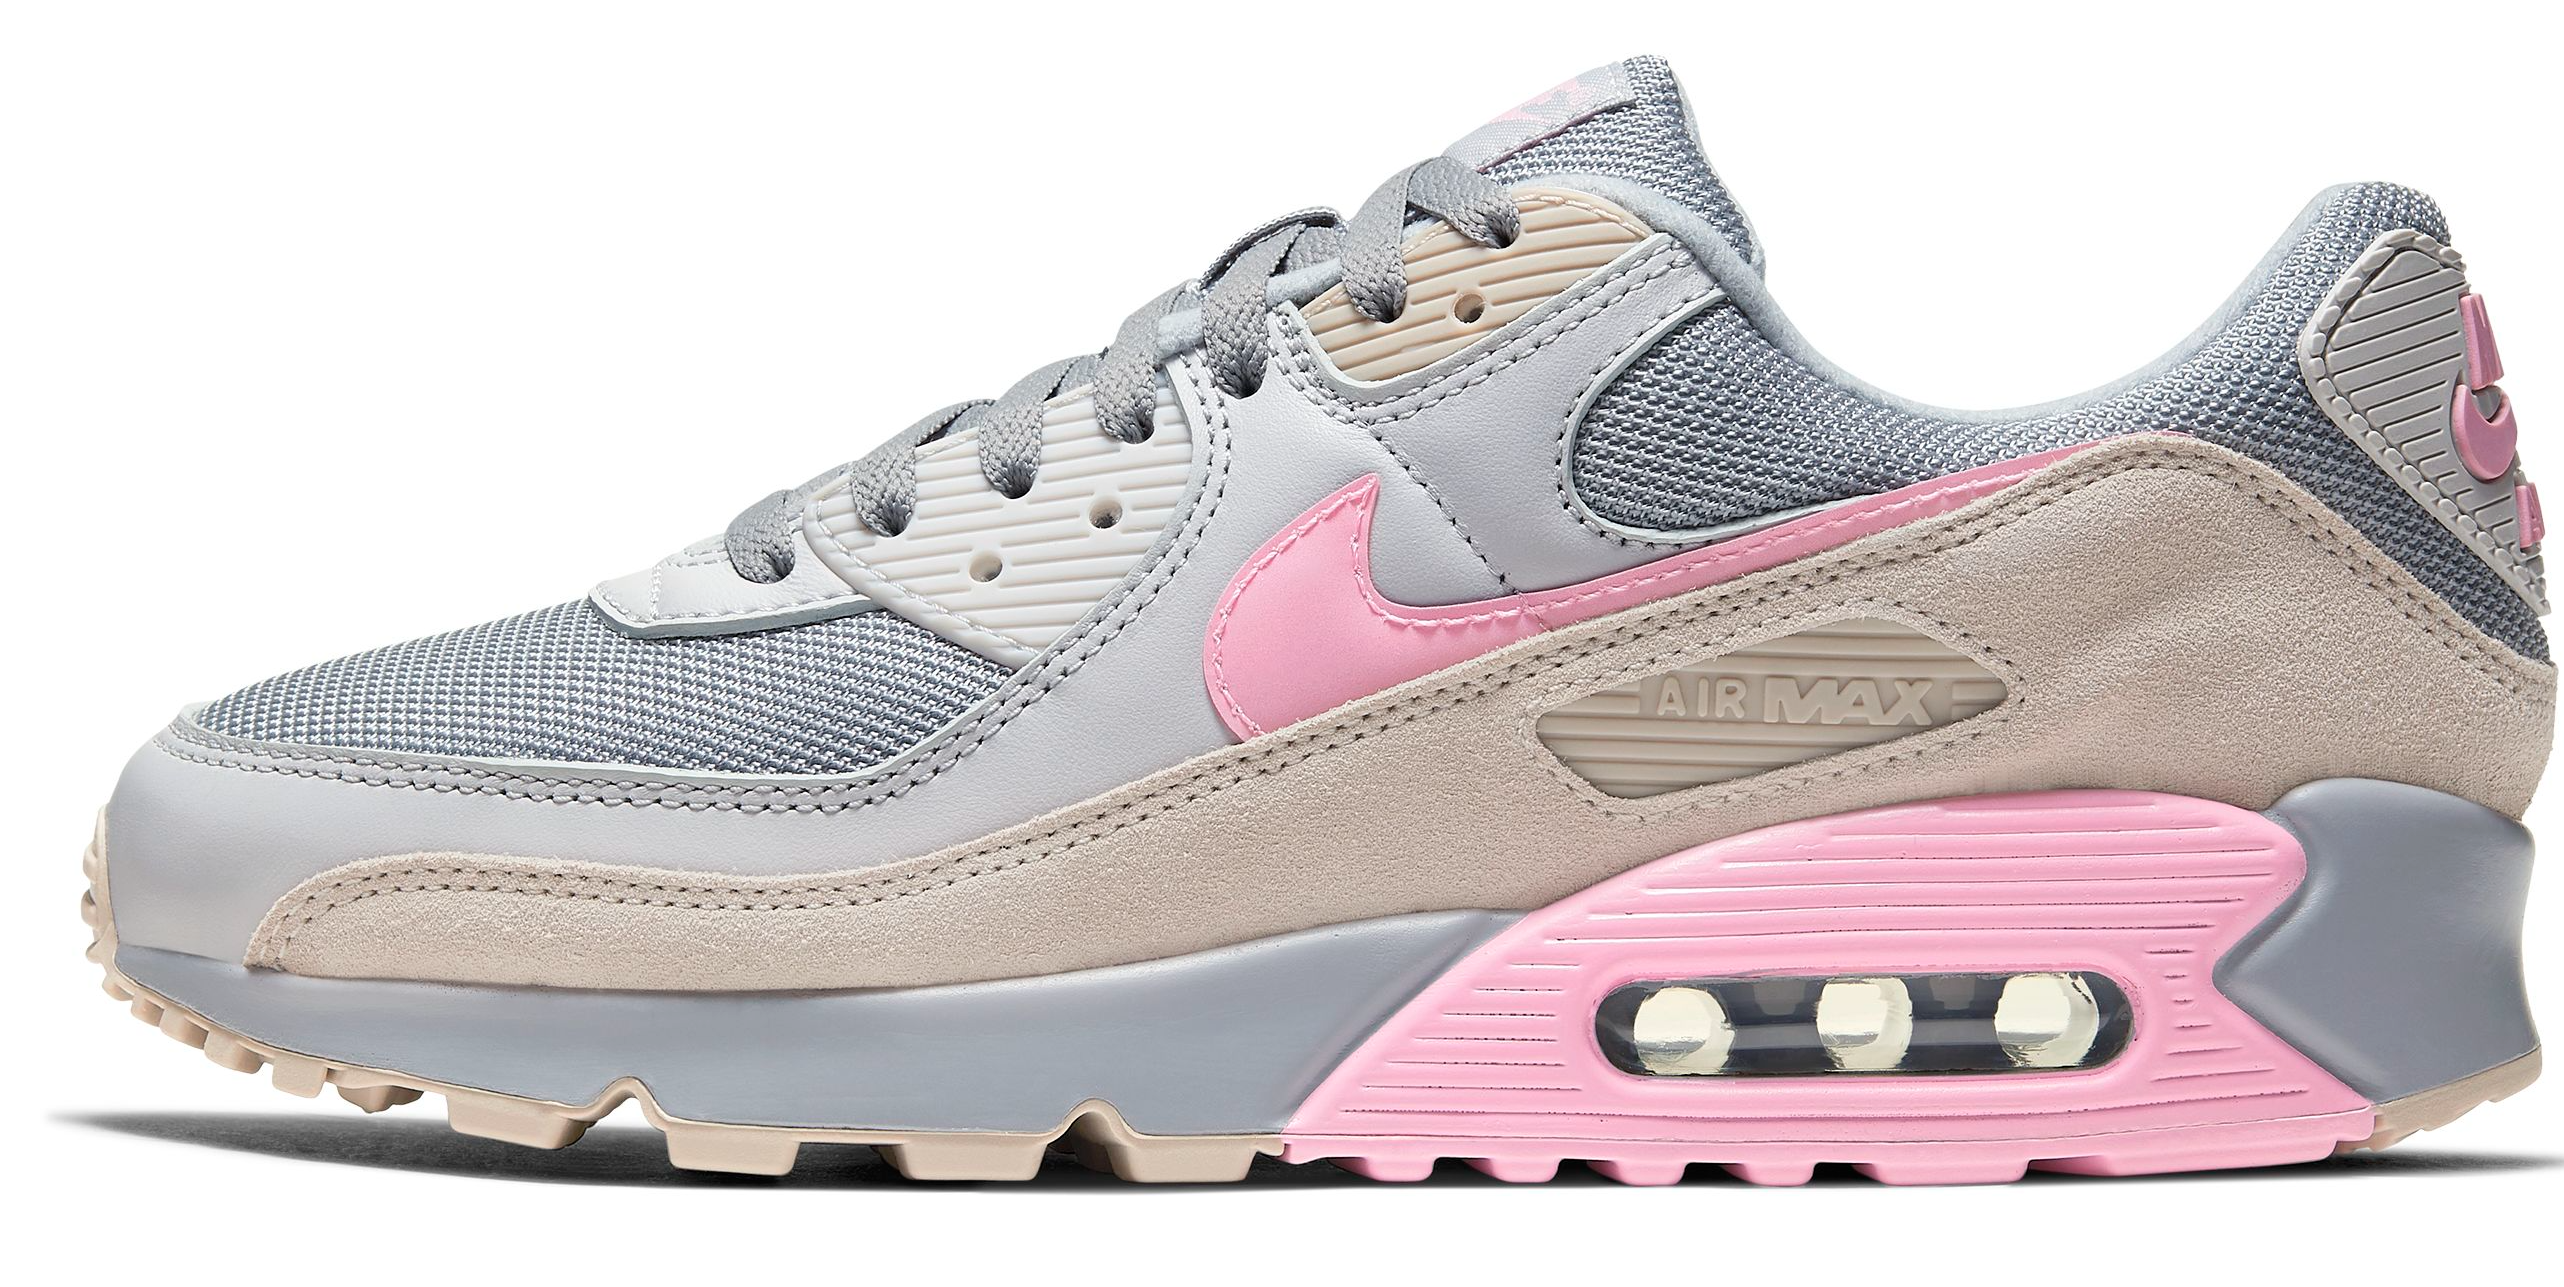 Nike Air Max 90 Sail / Midnight Blue / Brown Rubber / Red